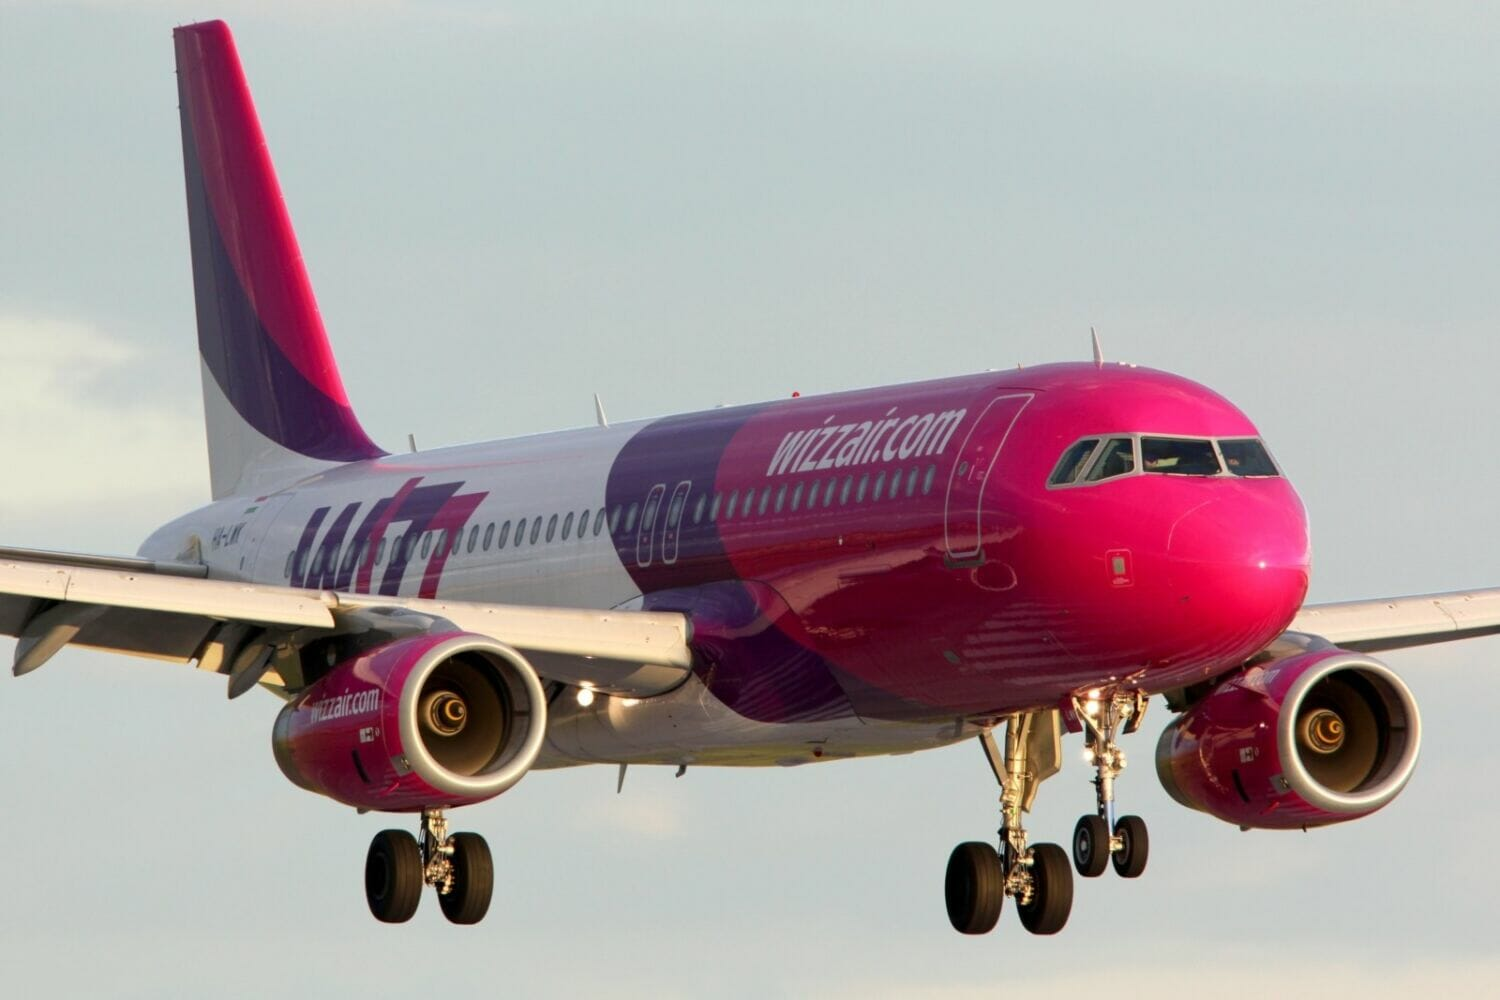 Wizz Air Pilot Assessment Guide